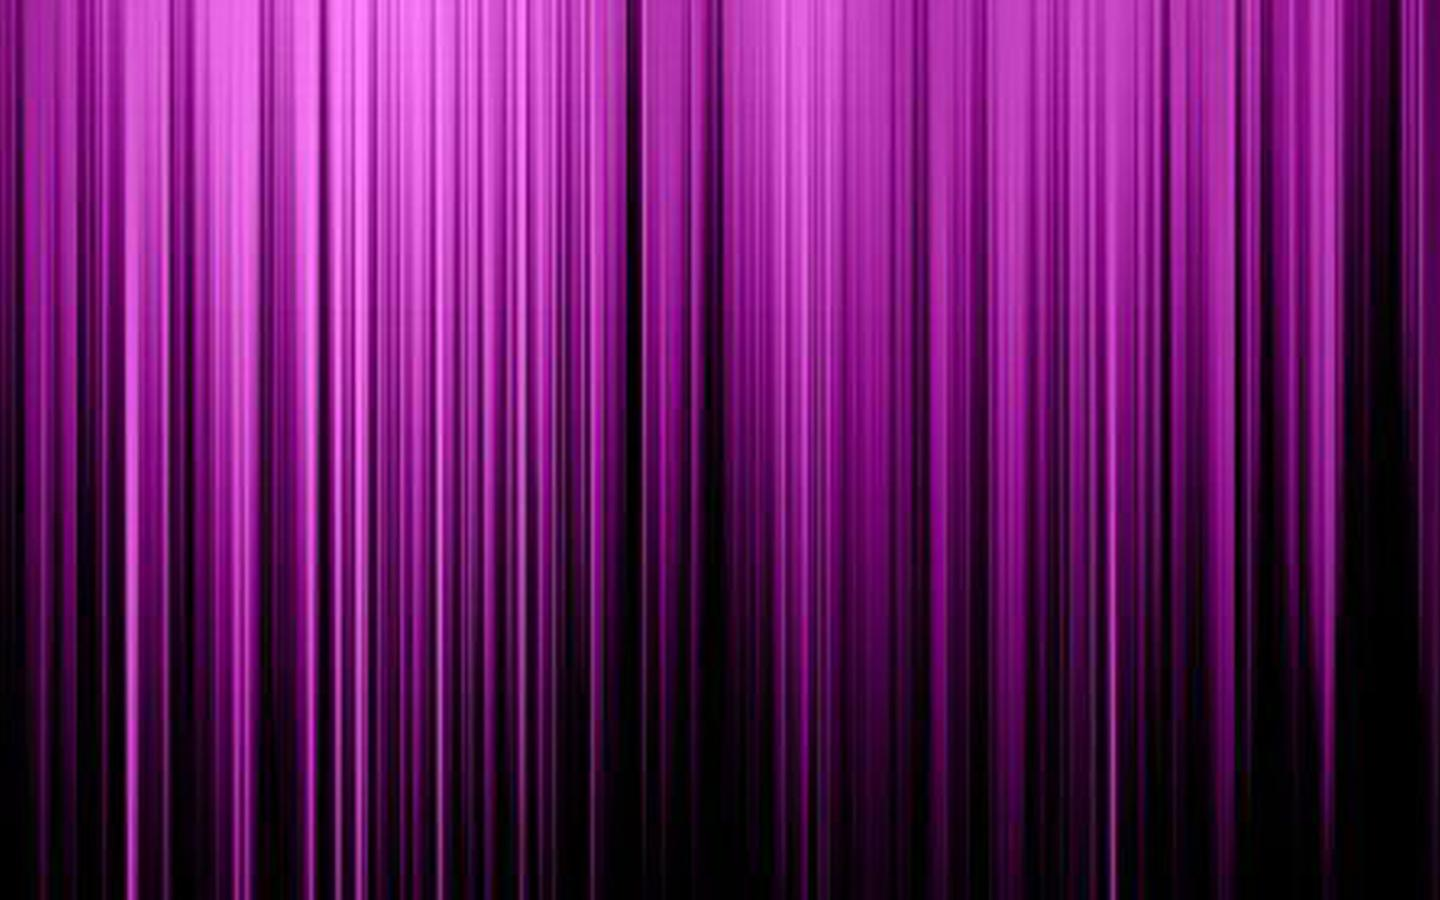 Plum Color Wallpaper With Black And Plum Vertical Lights HD Wallpapers Download Free Images Wallpaper [1000image.com]